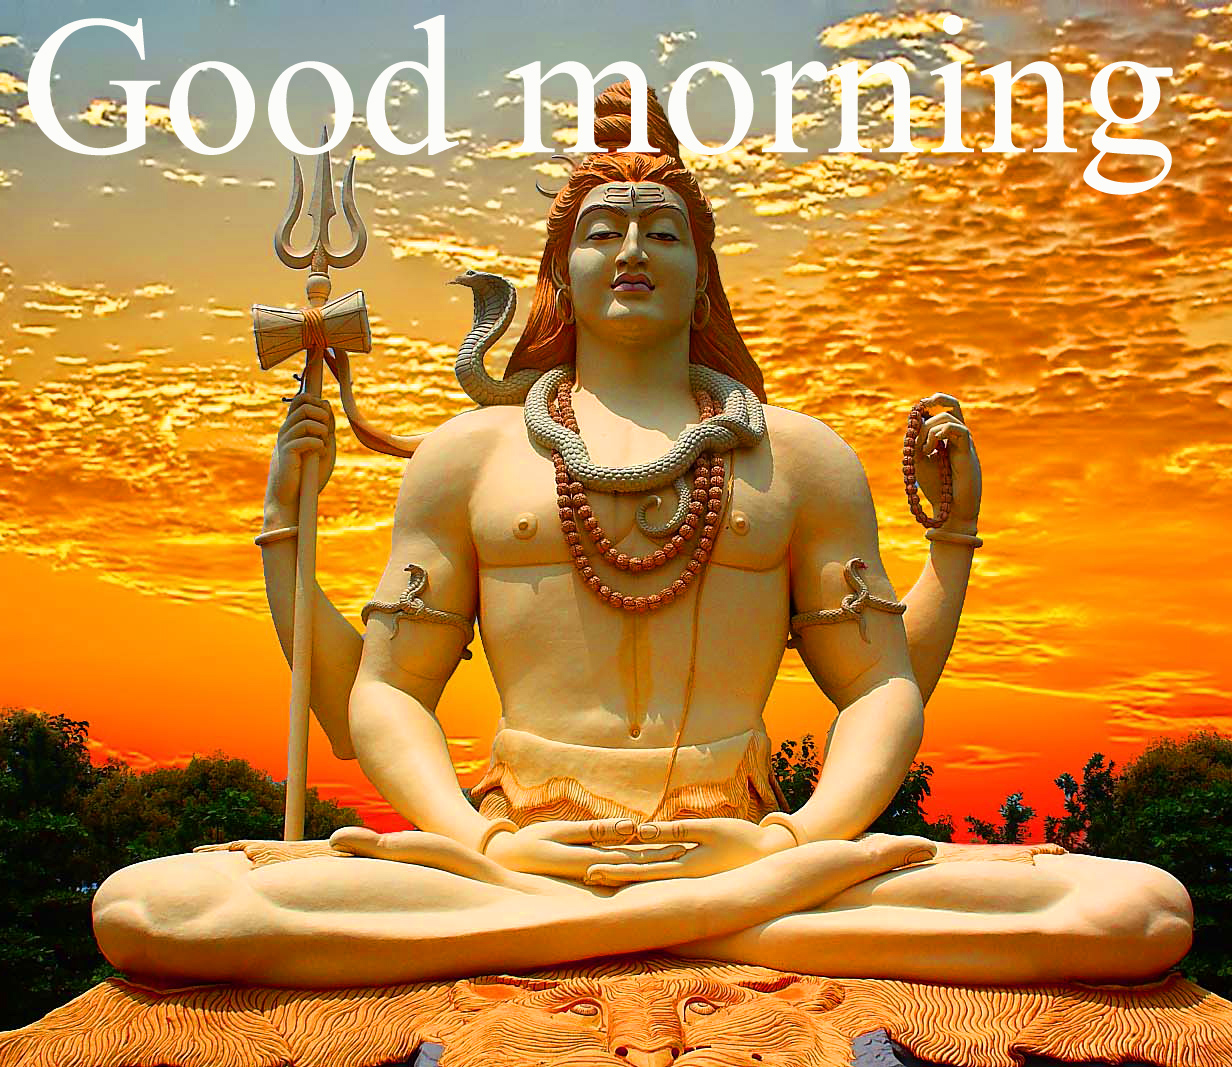 God Good Morning Photo Wallpaper Pictures HD Download